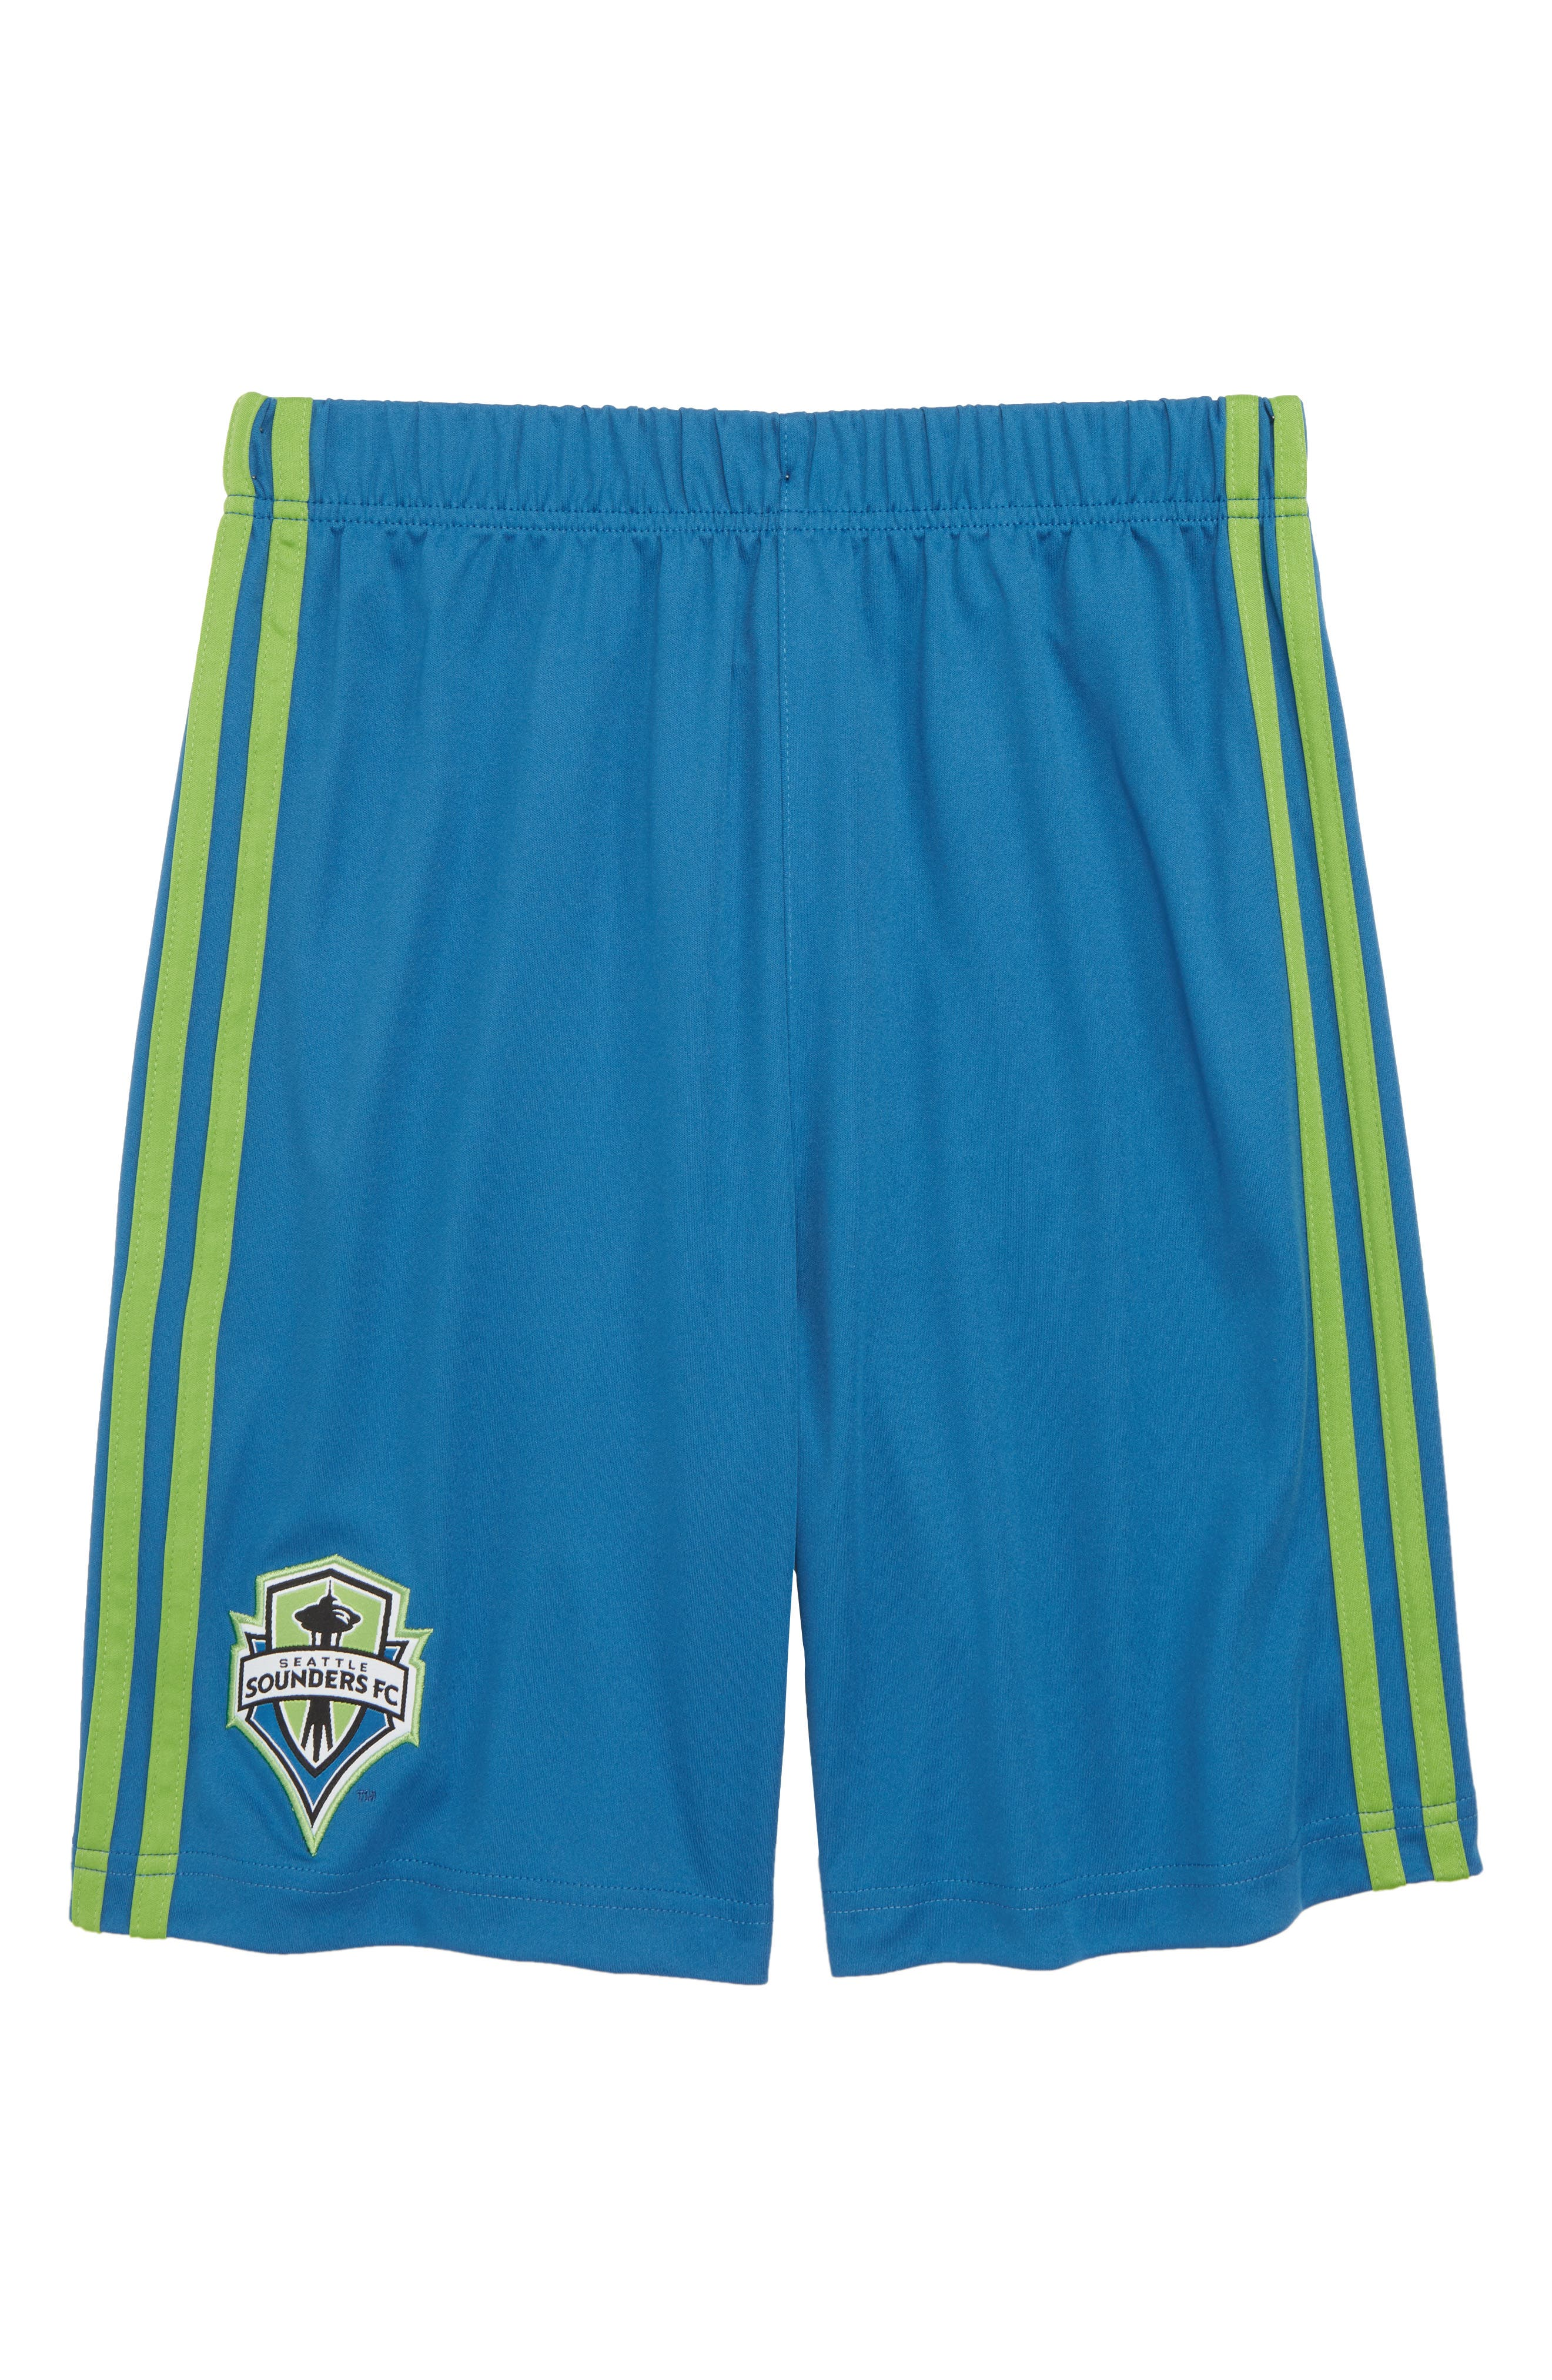 MLS Seattle Sounders FC Shorts,                         Main,                         color, 400